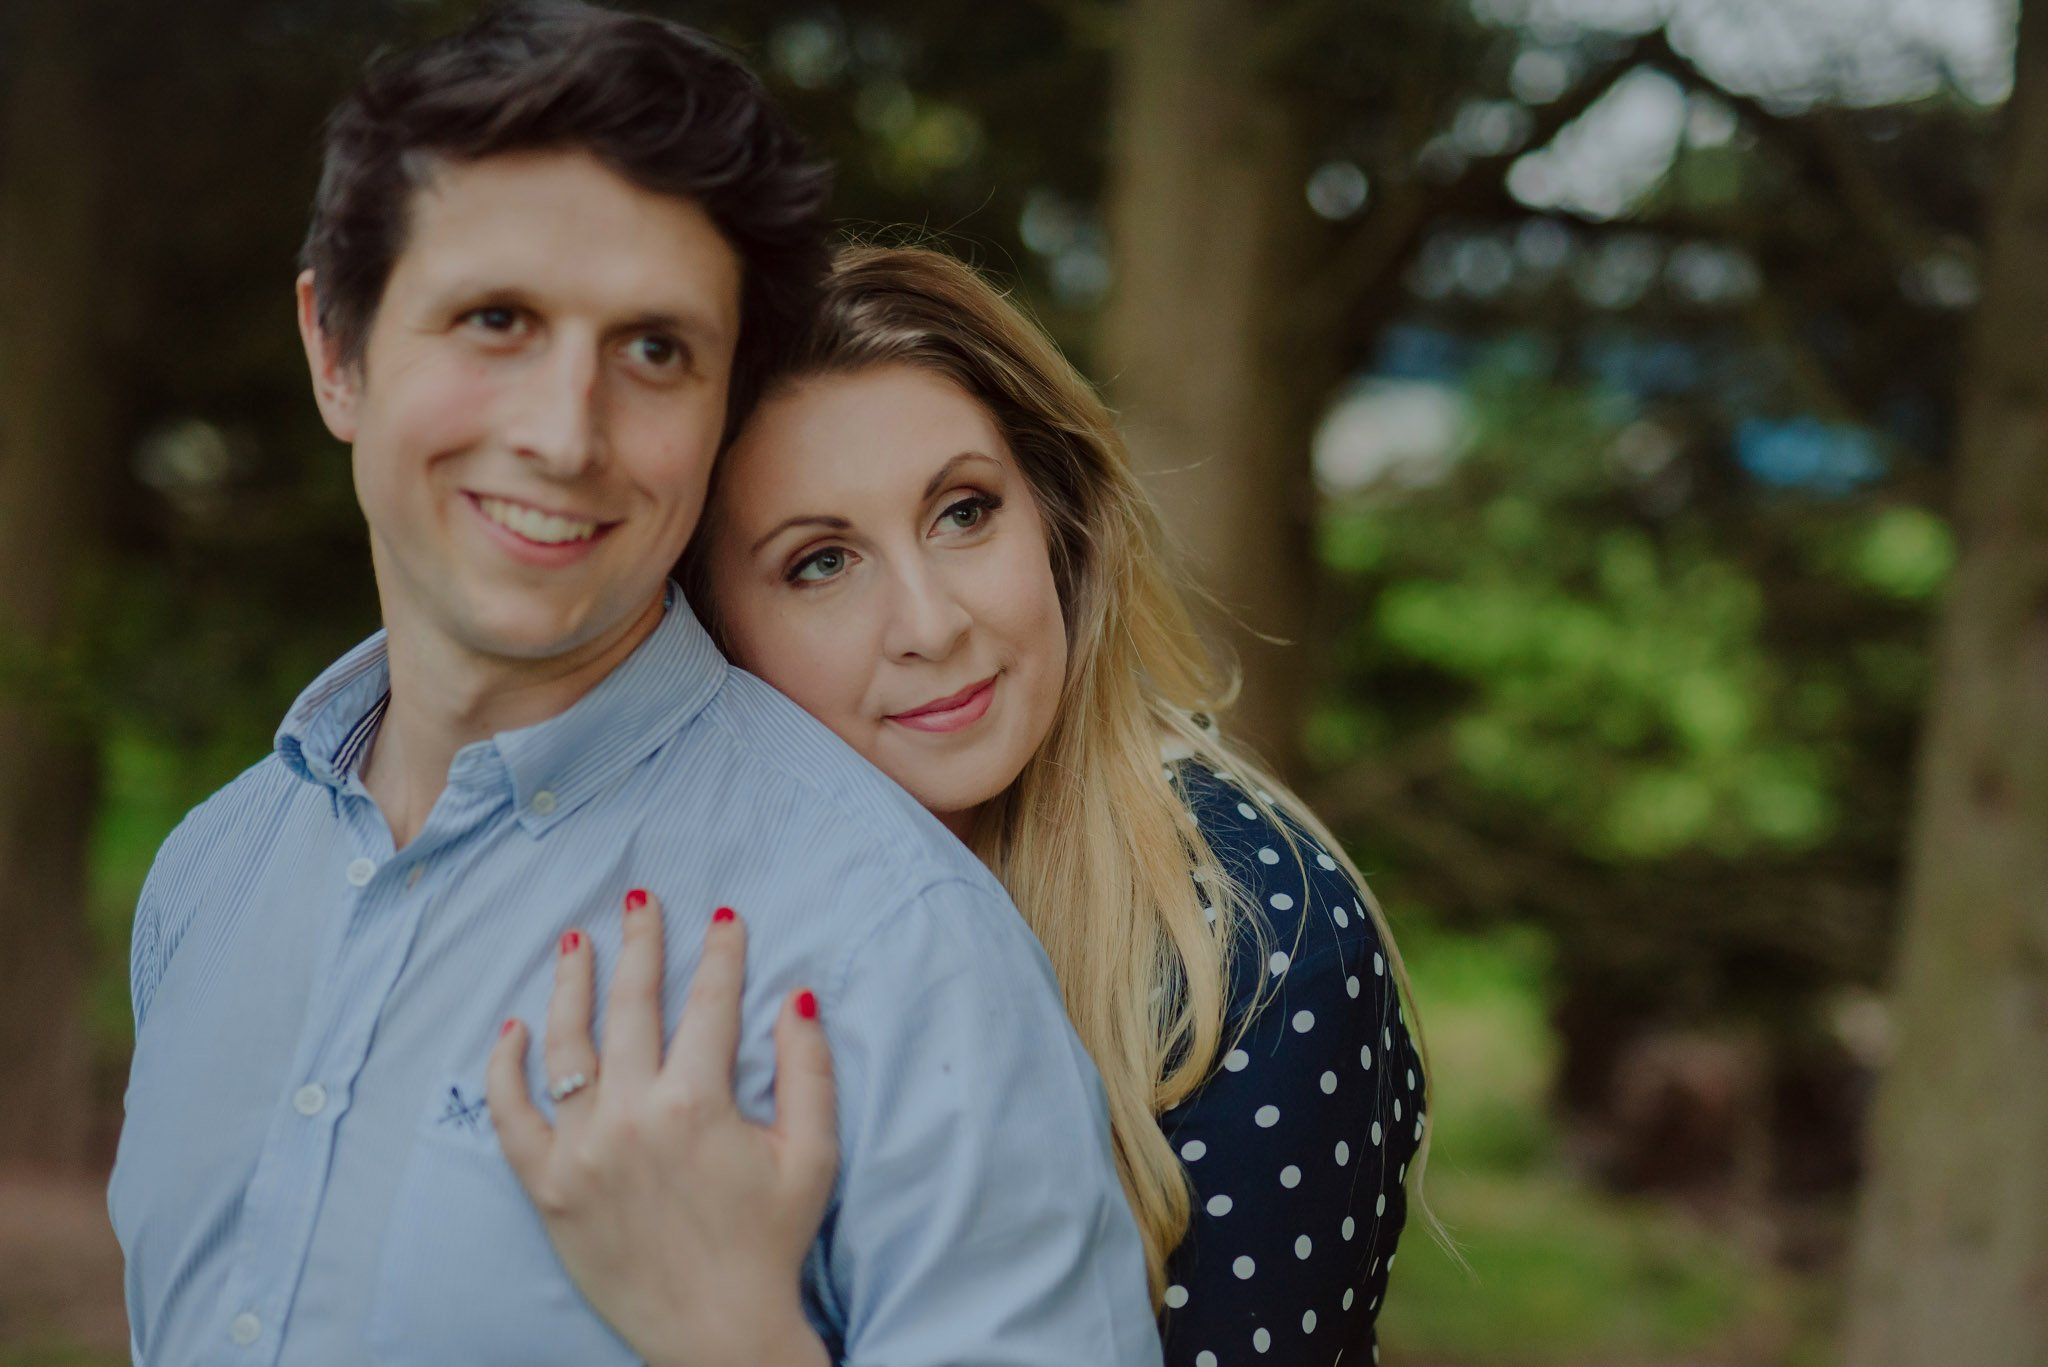 engagement-photography-in-herefordshire-west-midlands (43)